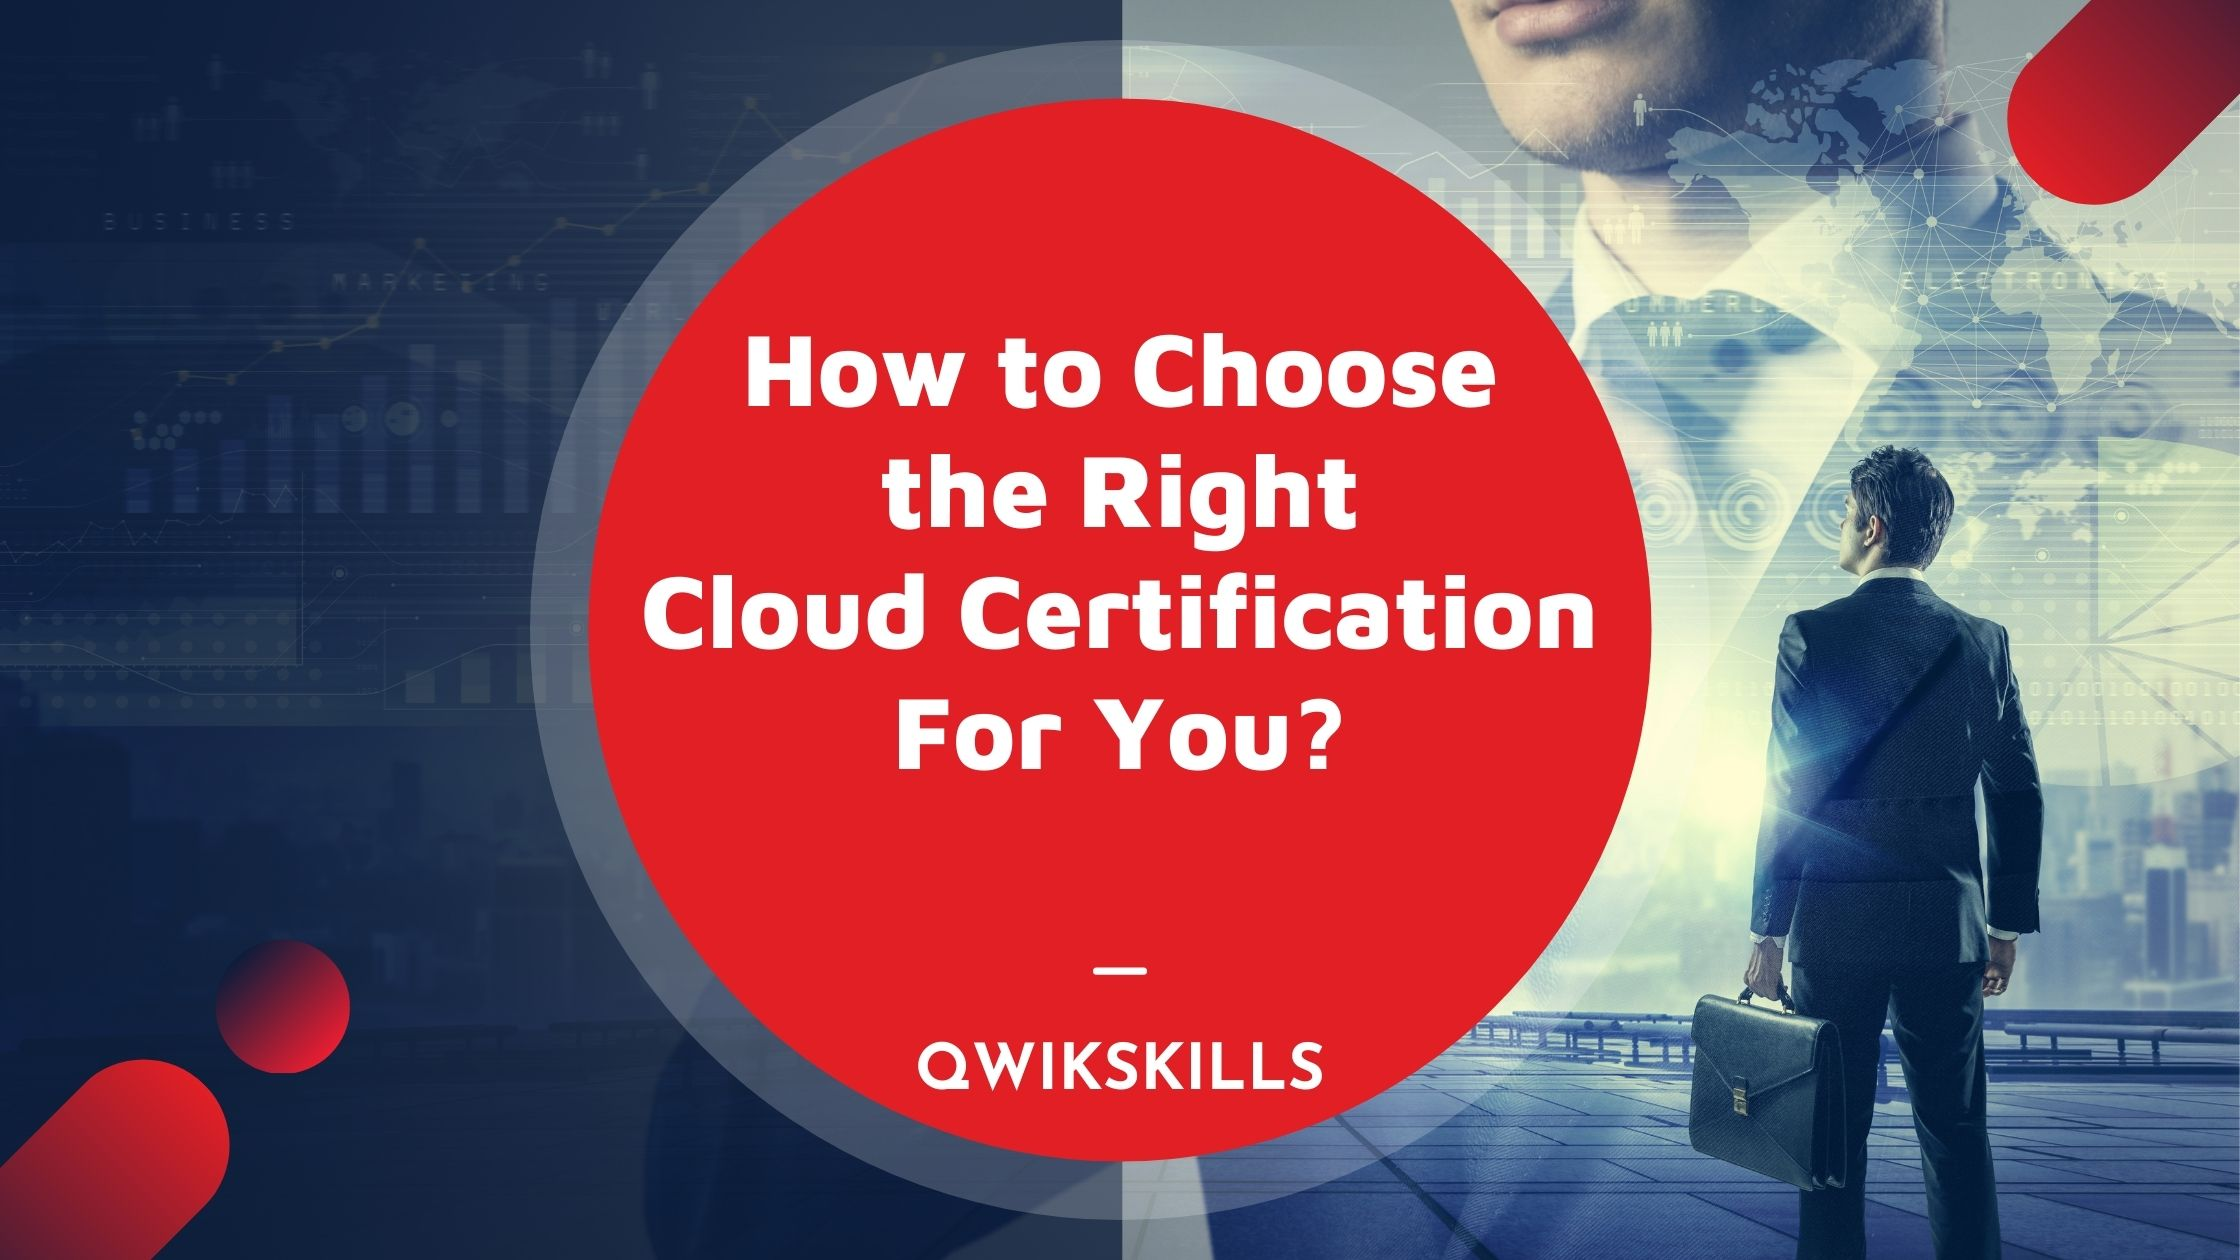 Top 5 Cloud Certifications. How to Choose the Right One For You